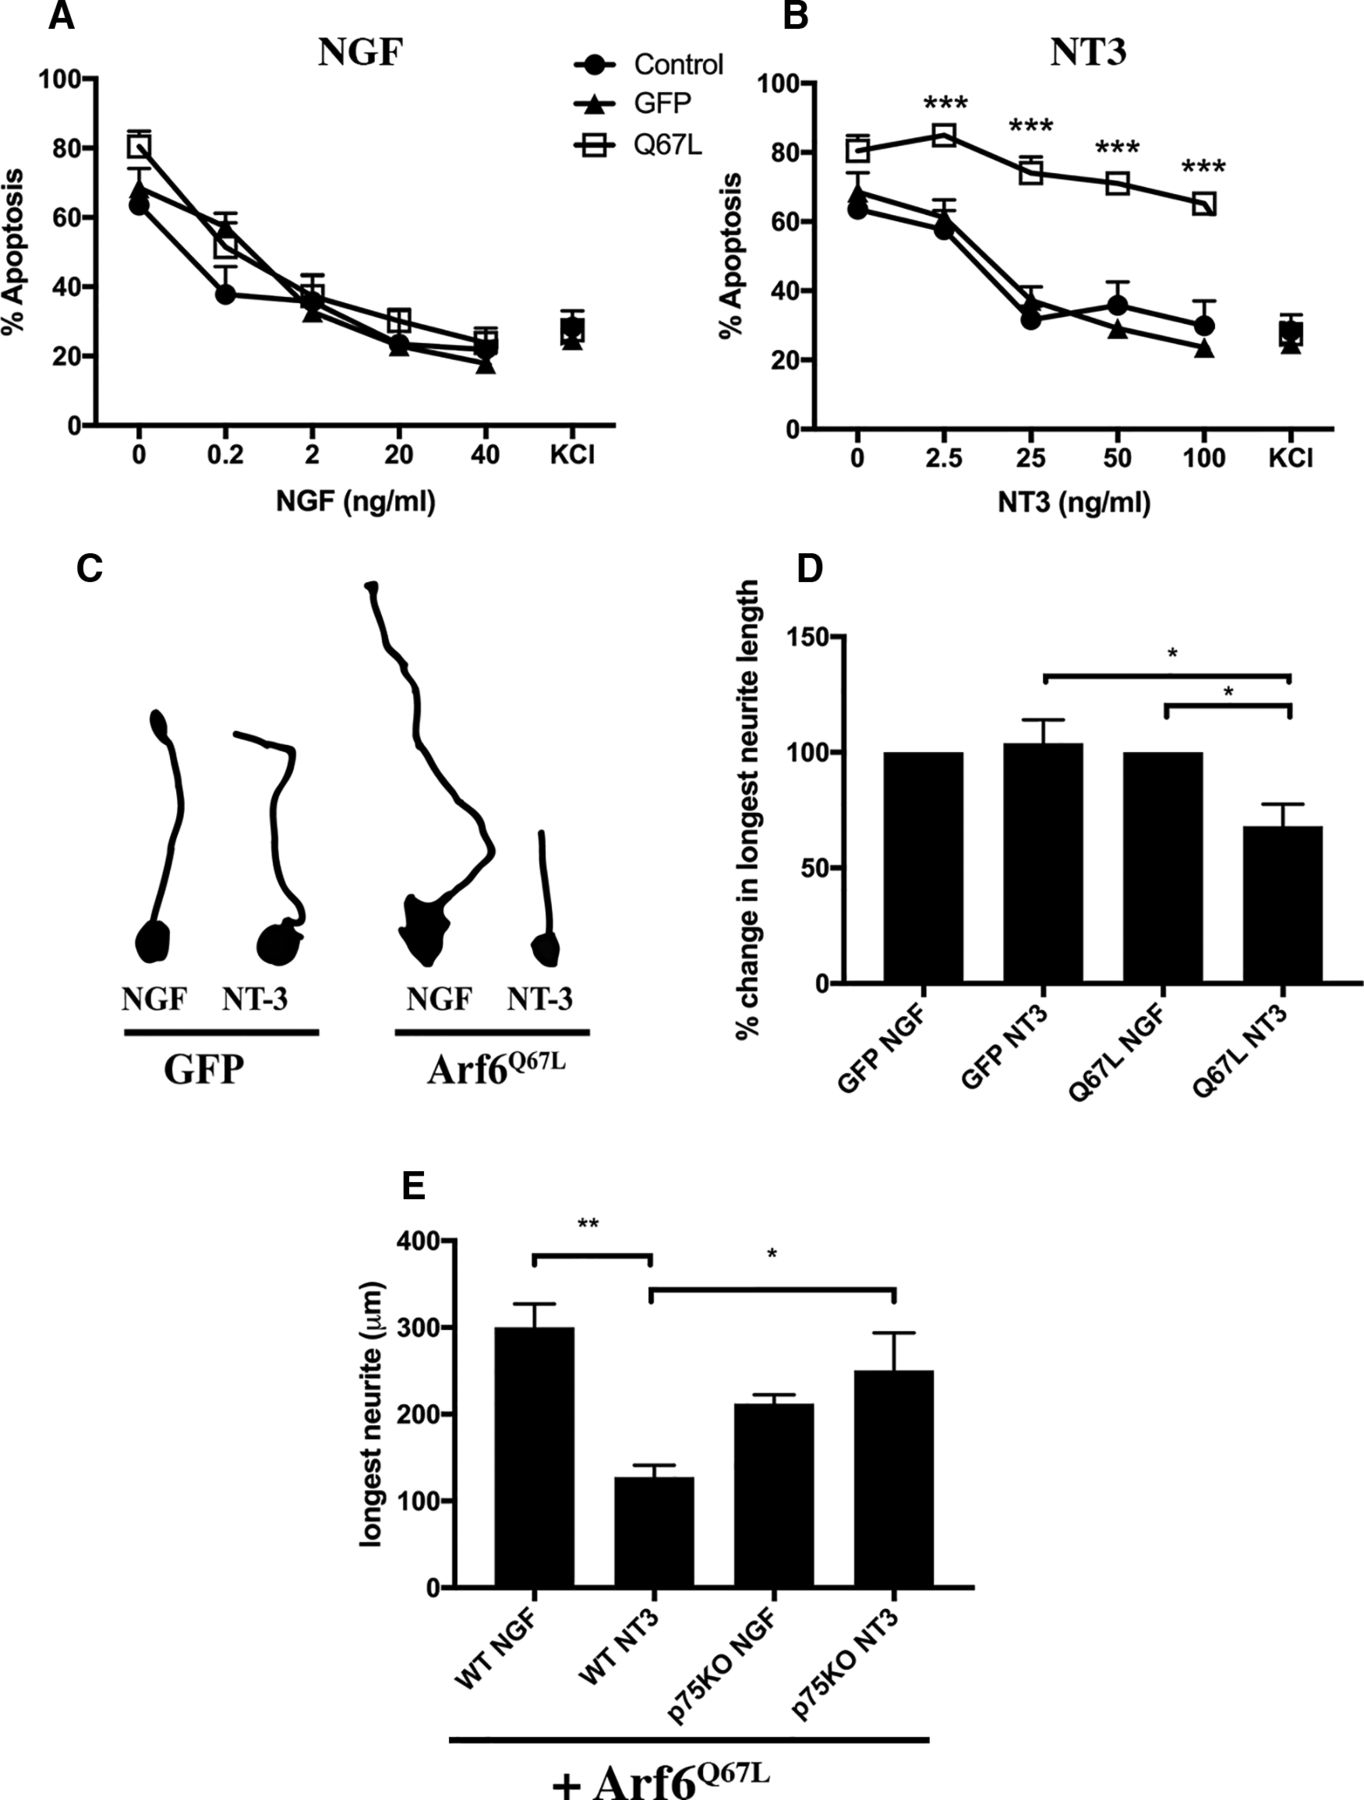 Neurotrophin Responsiveness Of Sympathetic Neurons Is Regulated By 2006 Pace Arrow Slide Out Wiring Diagram Download Figure